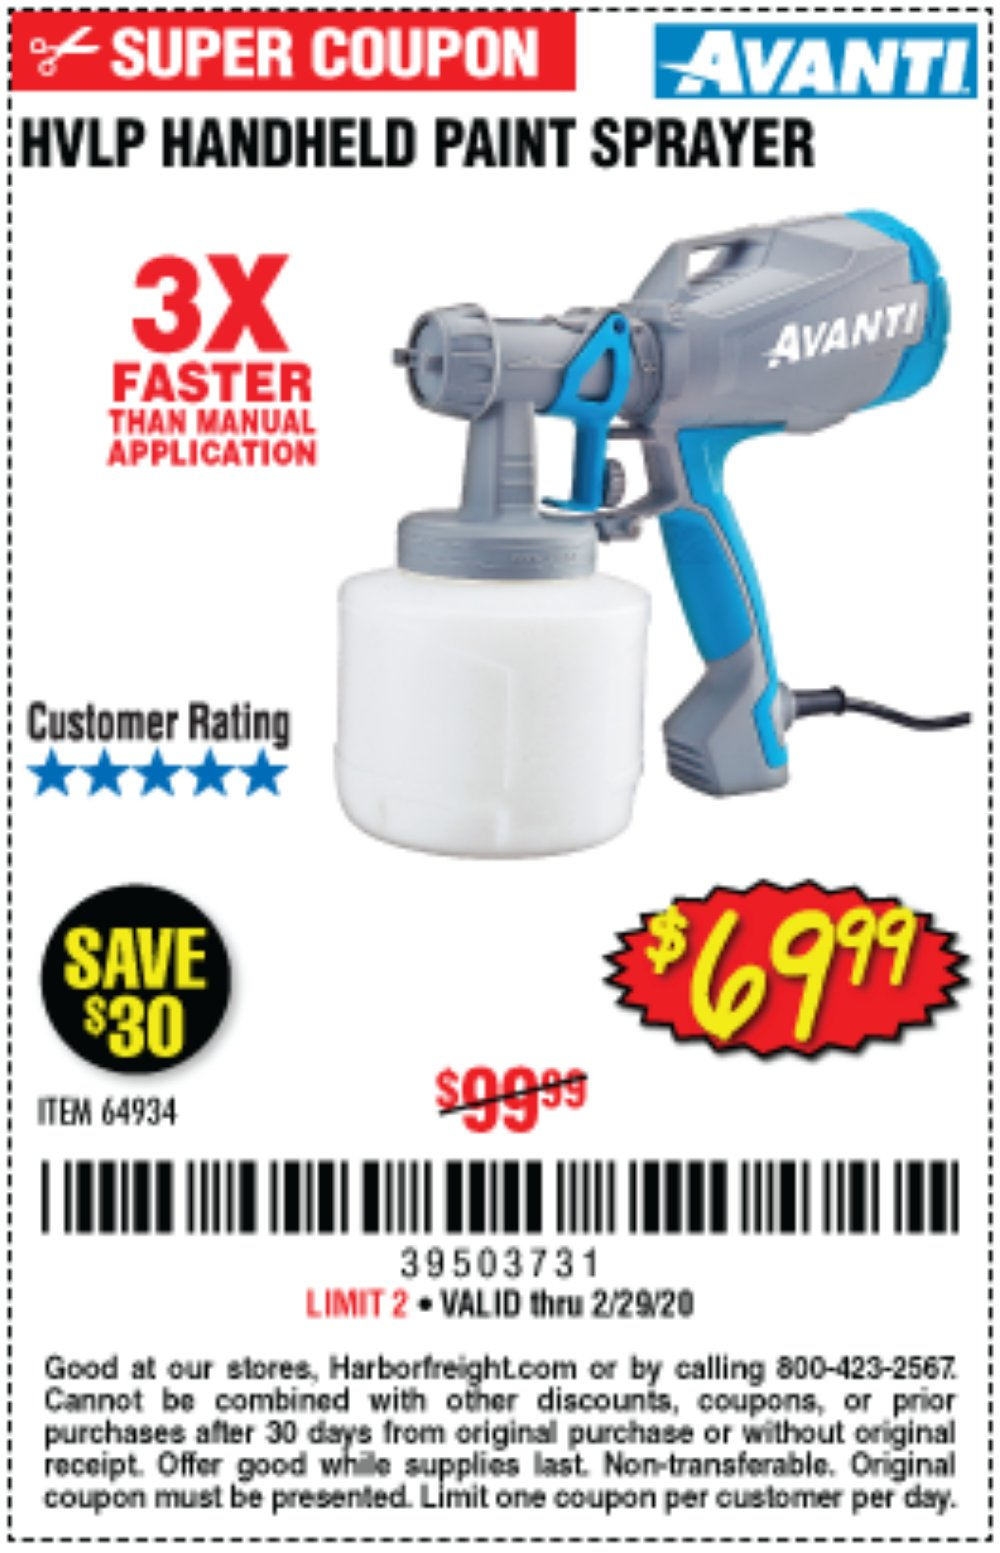 Harbor Freight Coupon, HF Coupons - Avanti Hvlp Hand Held Paint Sprayer